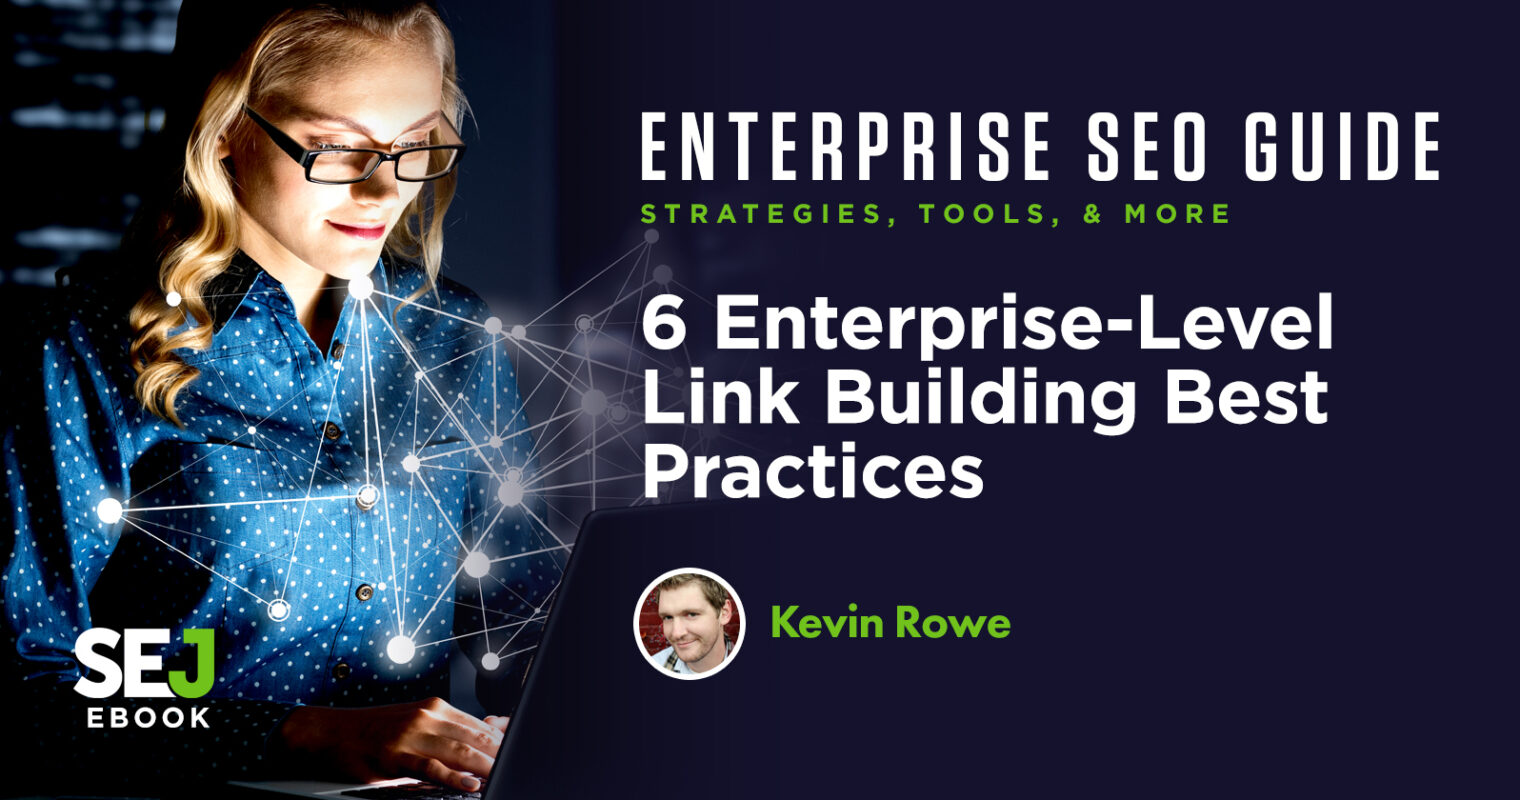 6 Enterprise-Level Link Building Best Practices